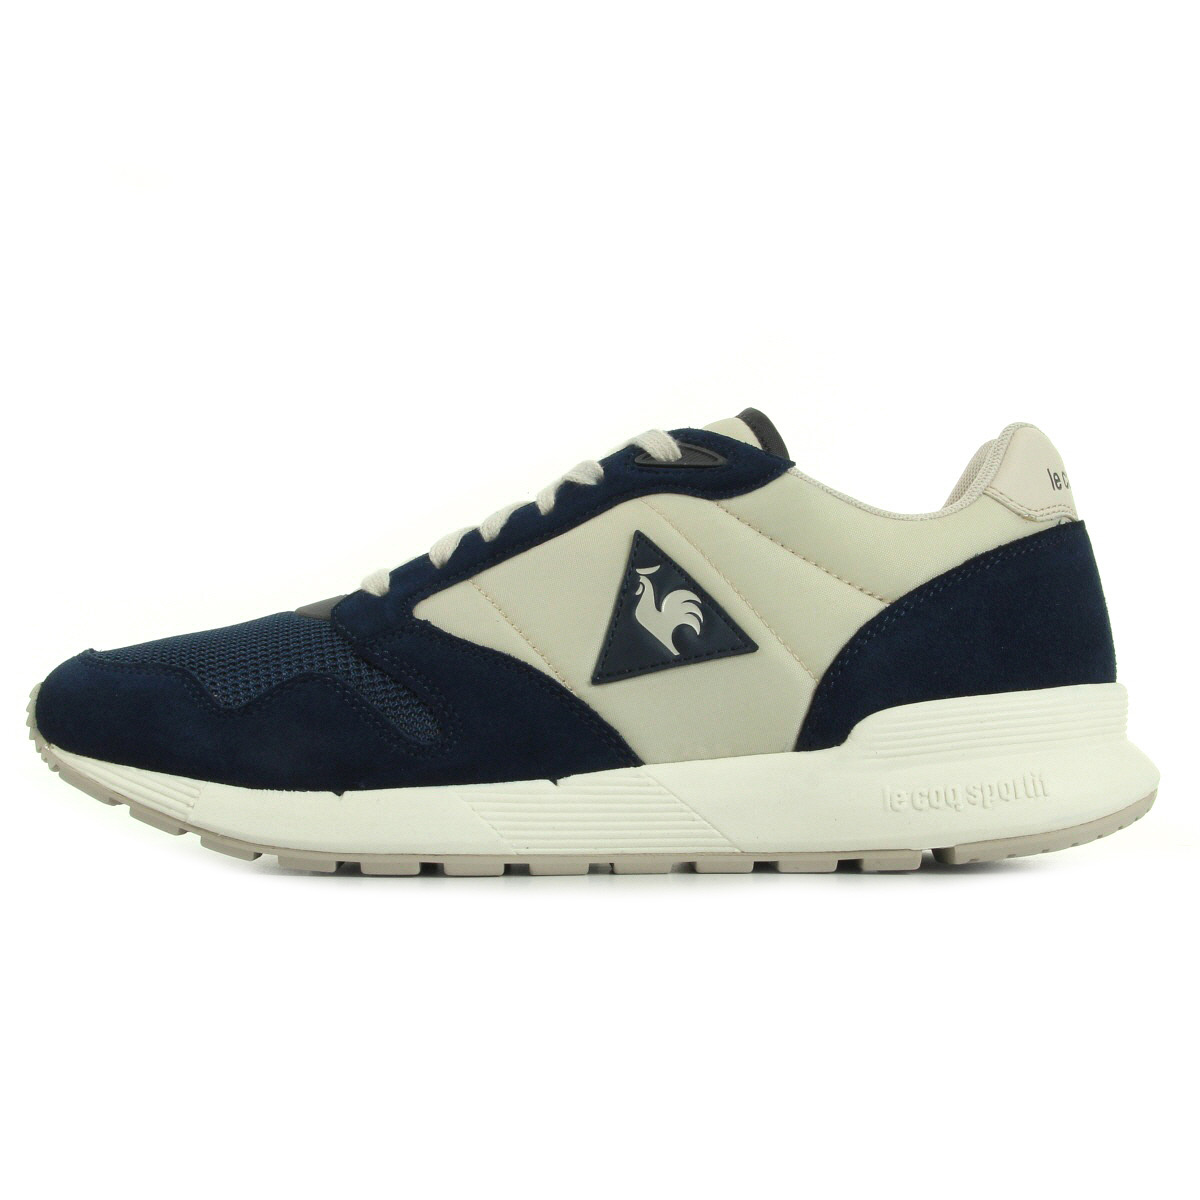 le coq sportif omega x nylon suede 1620331 chaussures homme homme. Black Bedroom Furniture Sets. Home Design Ideas